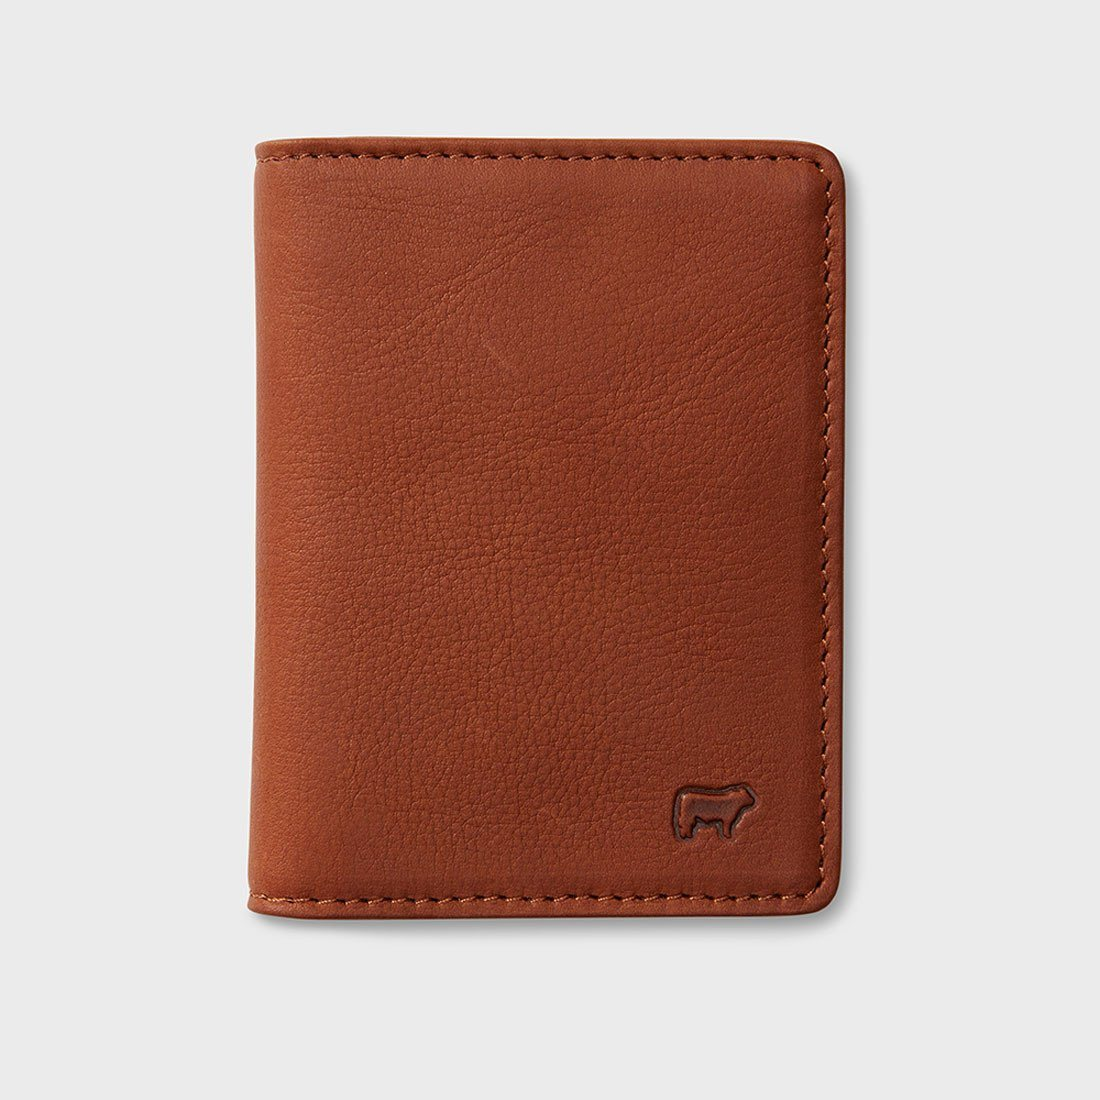 Will Leather Goods Cyrus Card Case Cognac